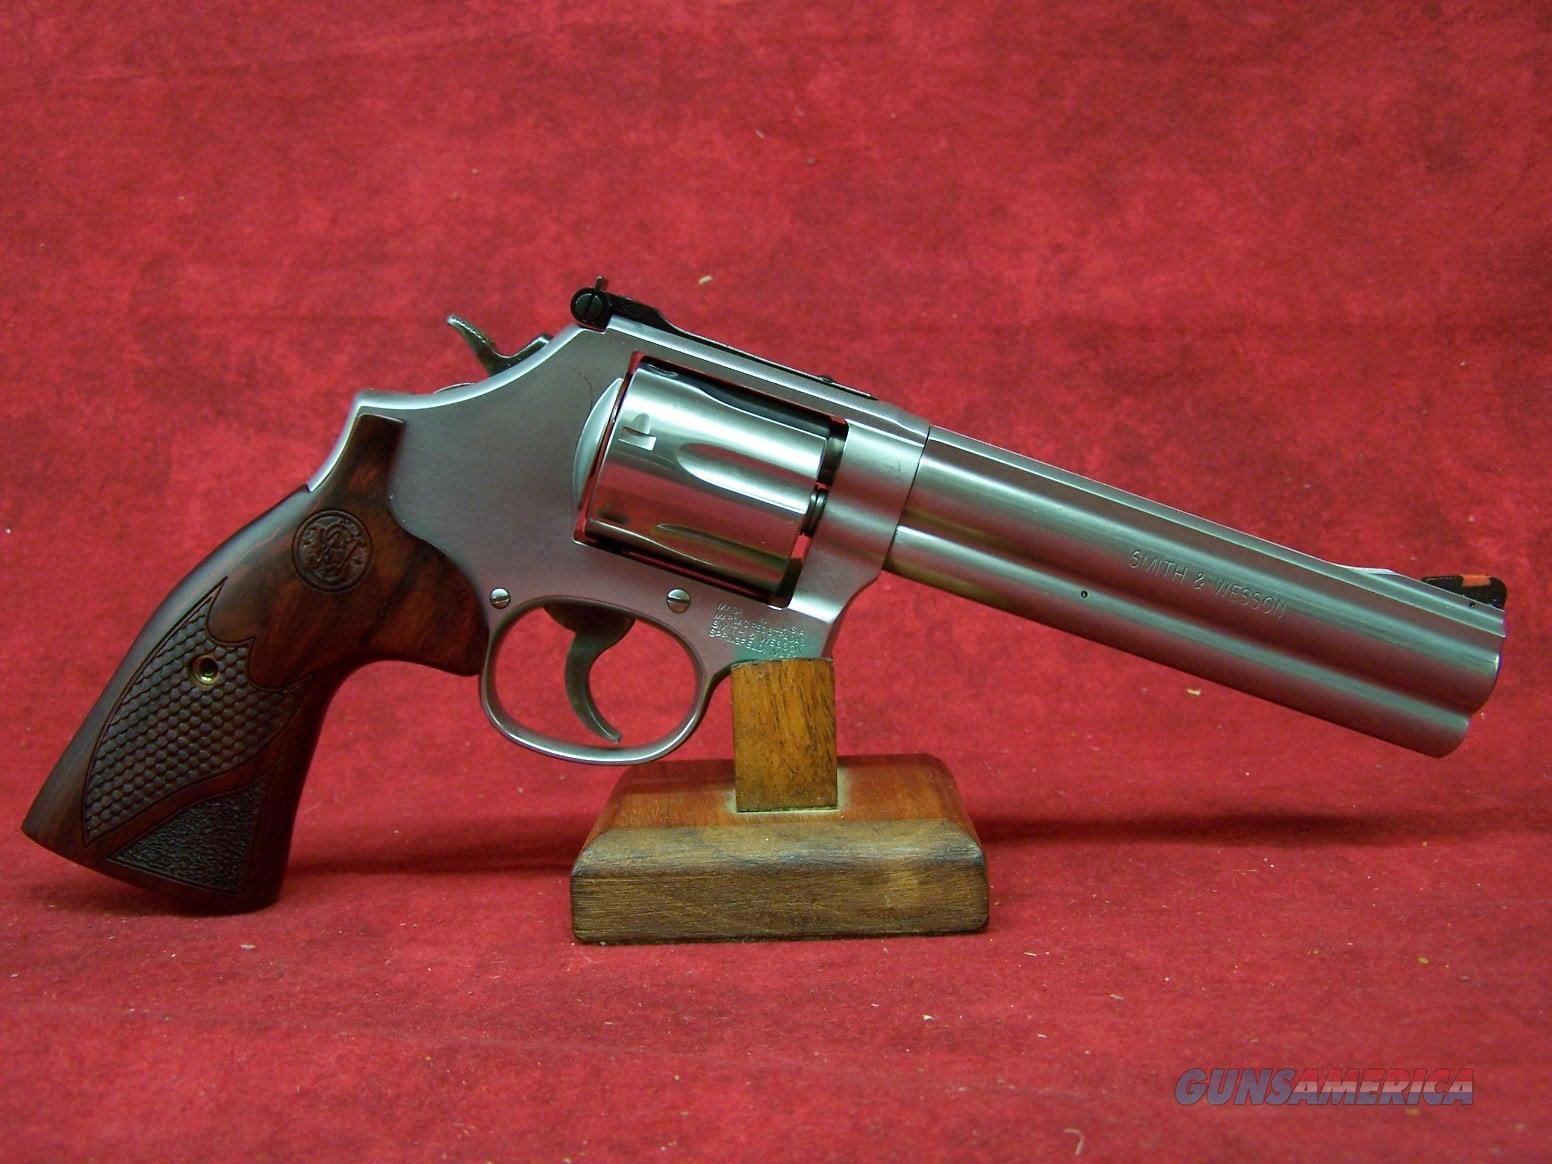 Smith & Wesson Model 686 Plus Deluxe .357 Magnum/.38 Smith & Wesson Special +P 6 Inch Barrel (150712)  Guns > Pistols > Smith & Wesson Revolvers > Full Frame Revolver